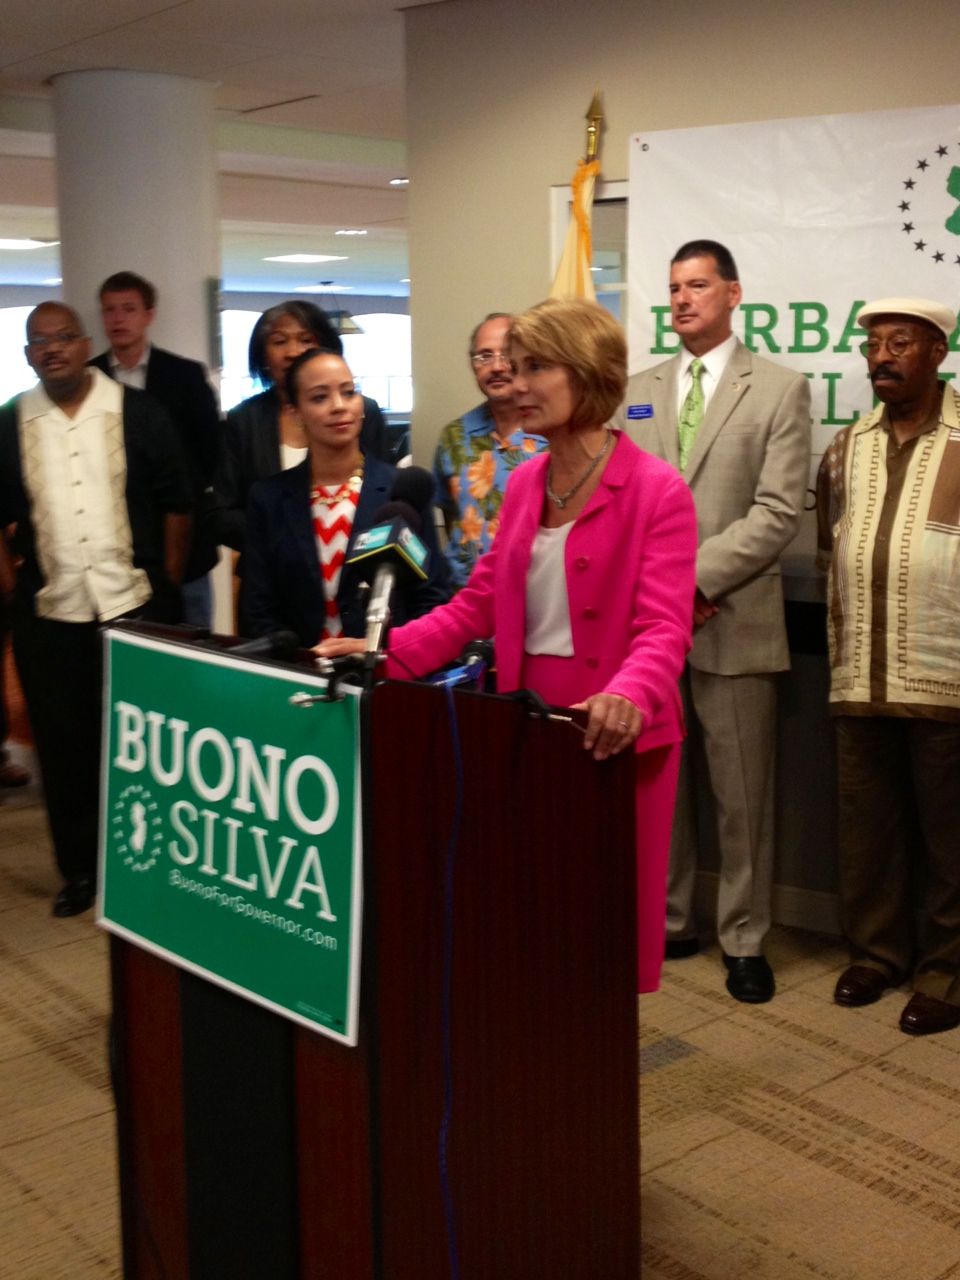 Weinberg joins Buono at fundraiser that pulls in 25K for Dem Guv candidate